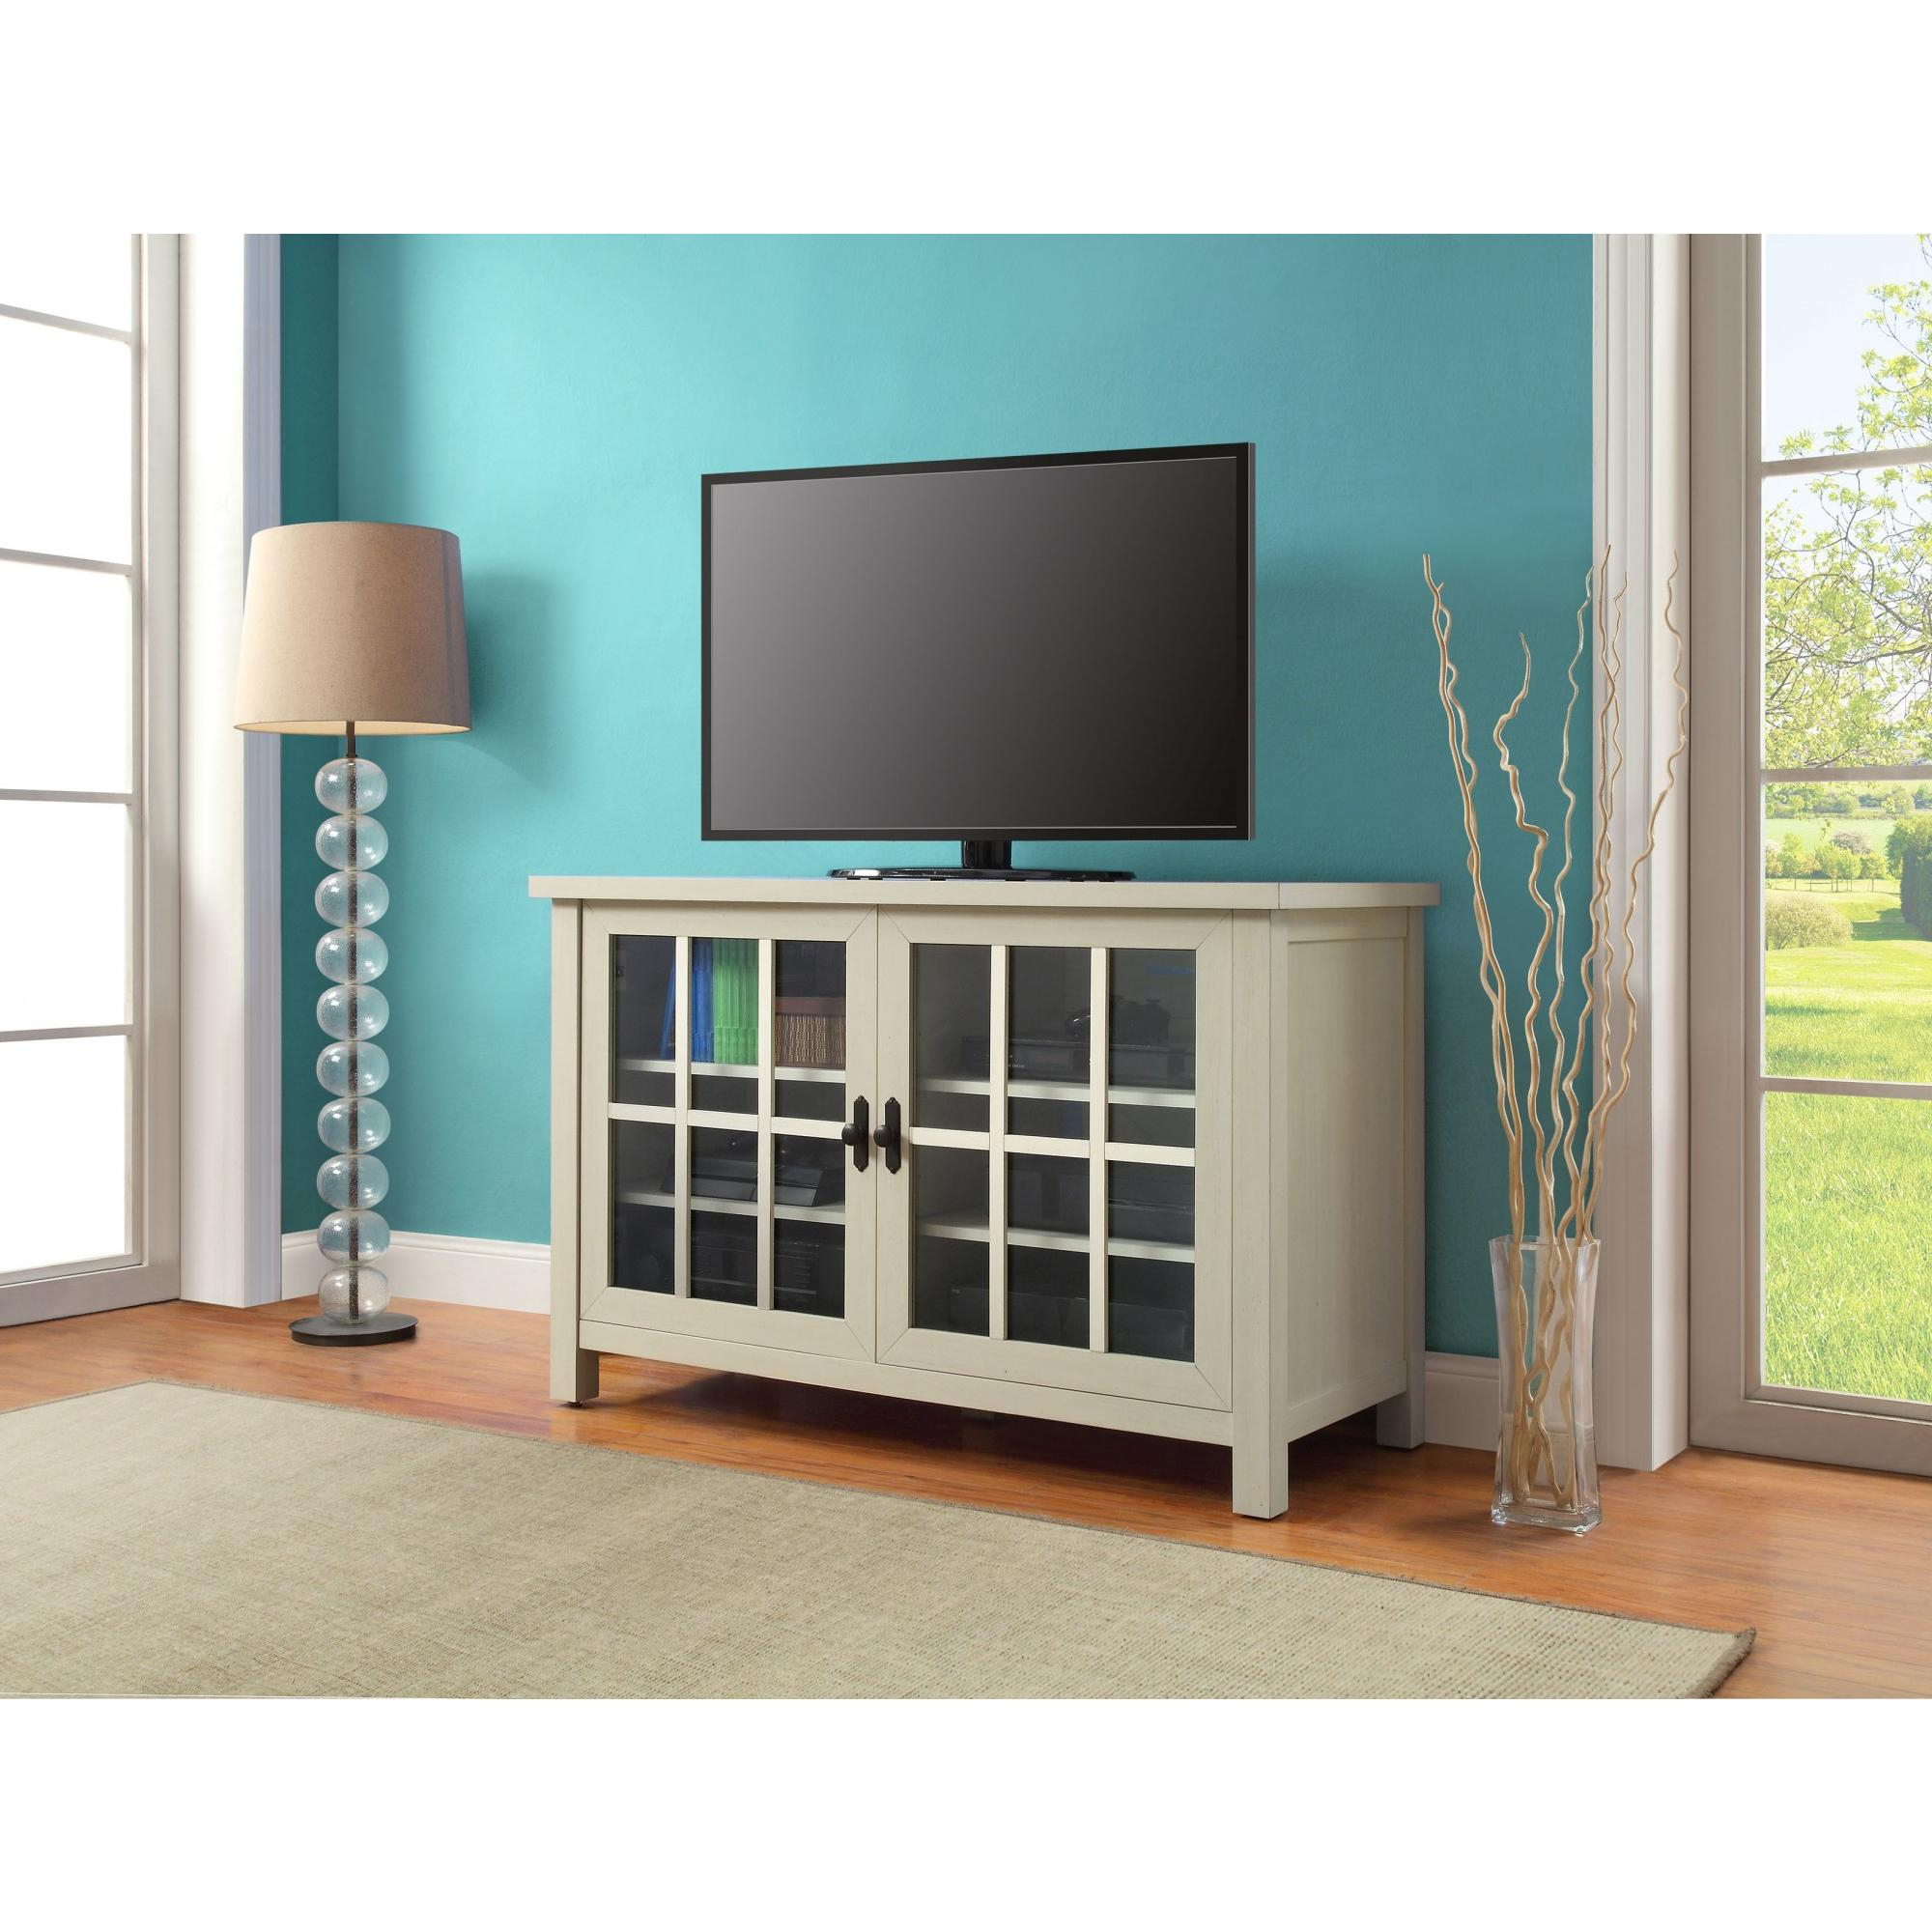 Most Popular Better Homes And Gardens Oxford Square Tv Console For Tvs Up To 55 Inside Oxford 84 Inch Tv Stands (View 8 of 20)